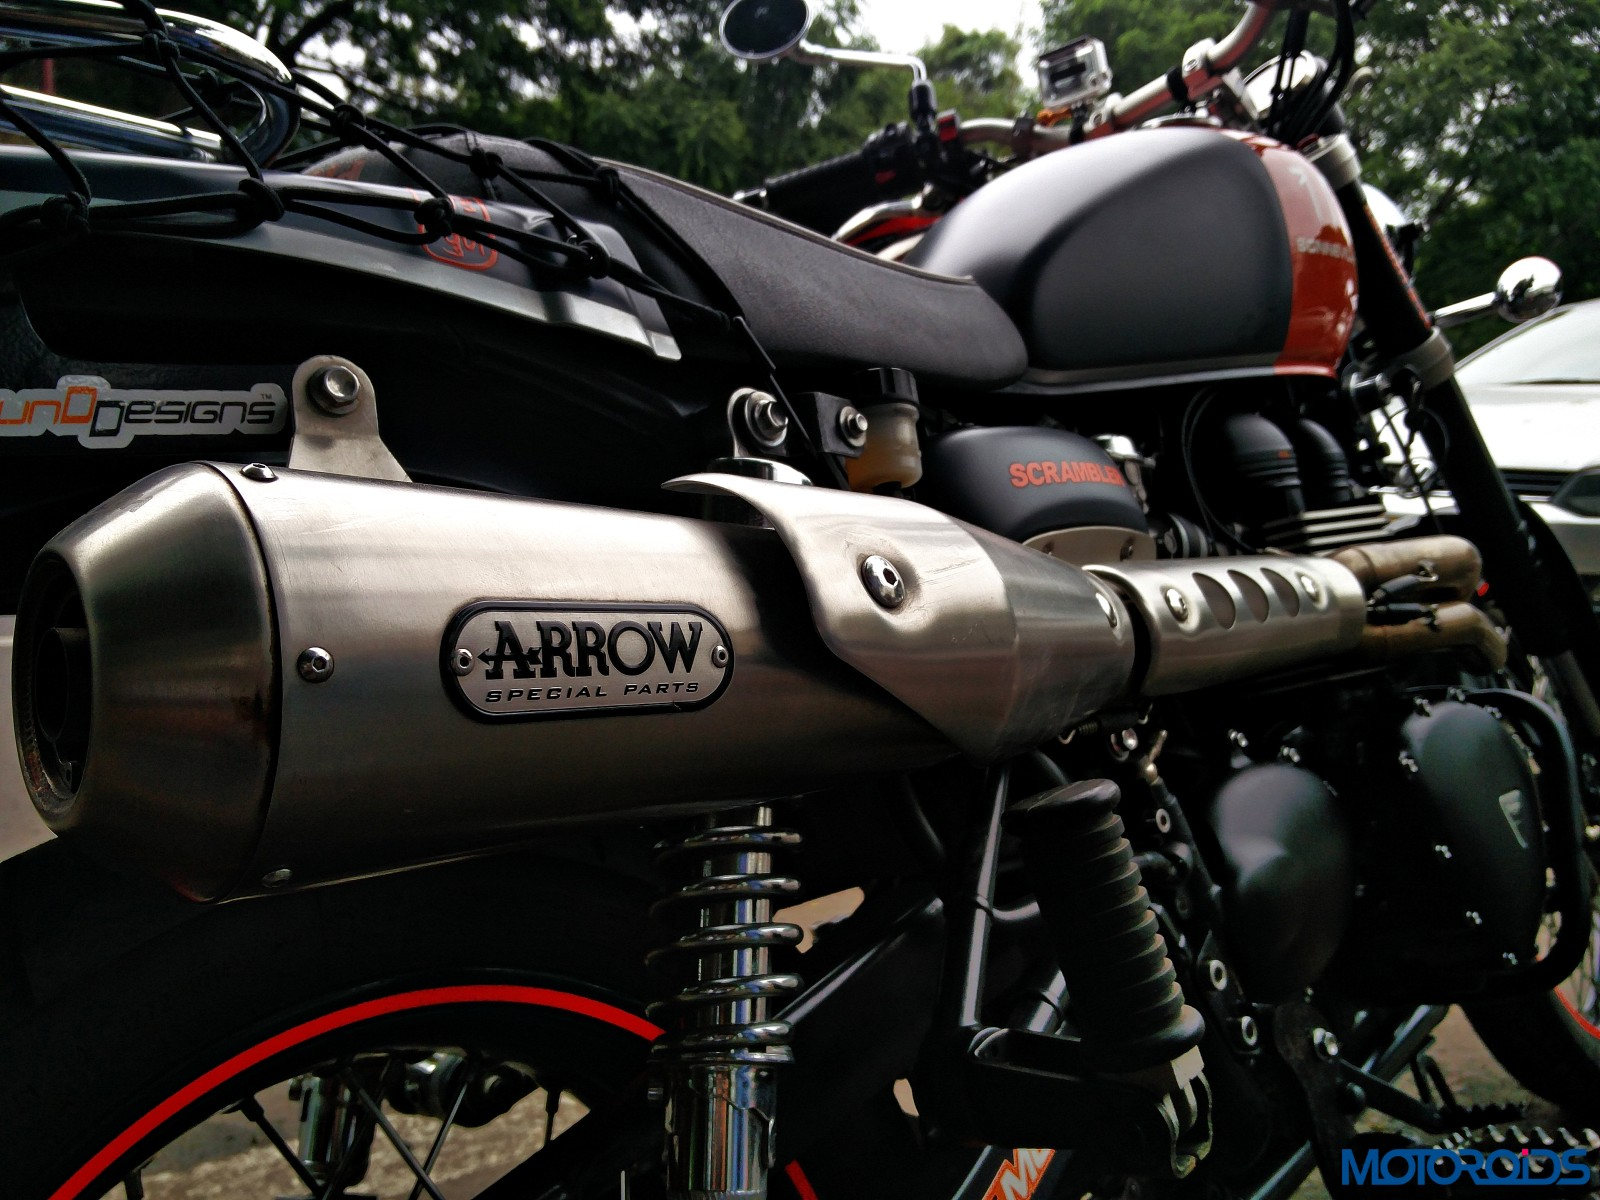 Customised Triumph Scrambler - Triumph Pune (4)